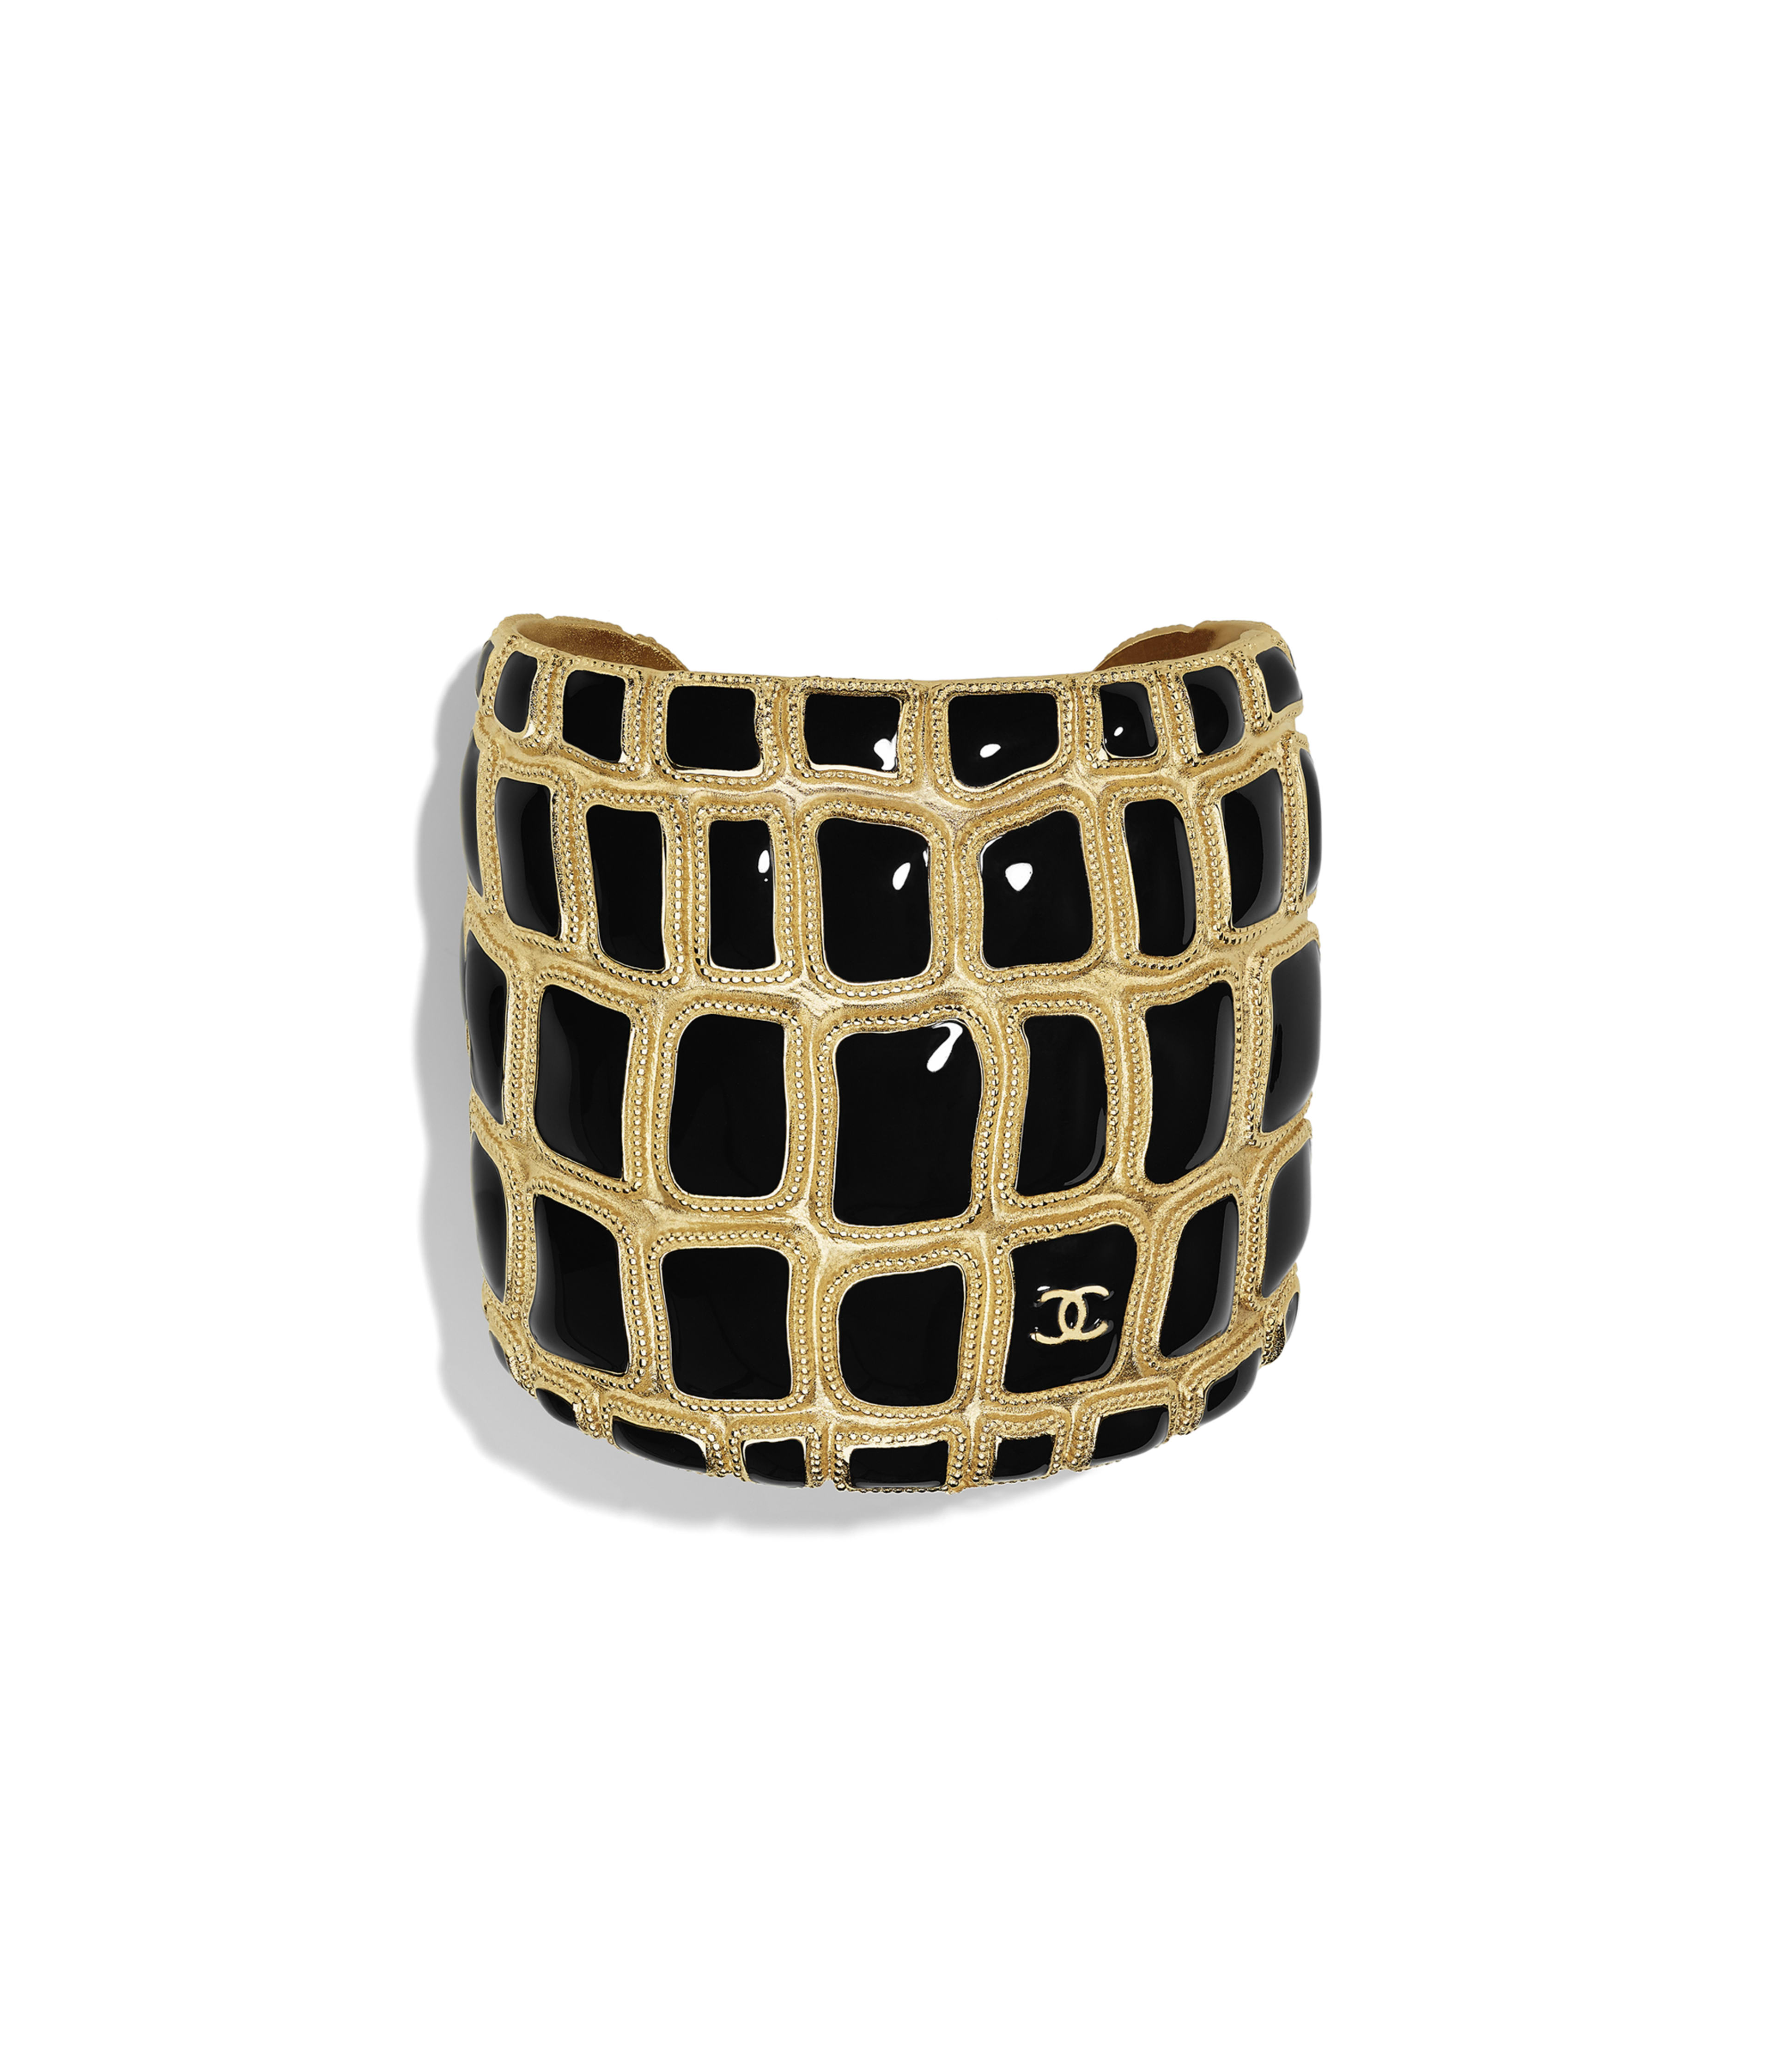 ca3799217 Cuff Metal & Resin, Gold & Black Ref. AB1475Y02018Z9017